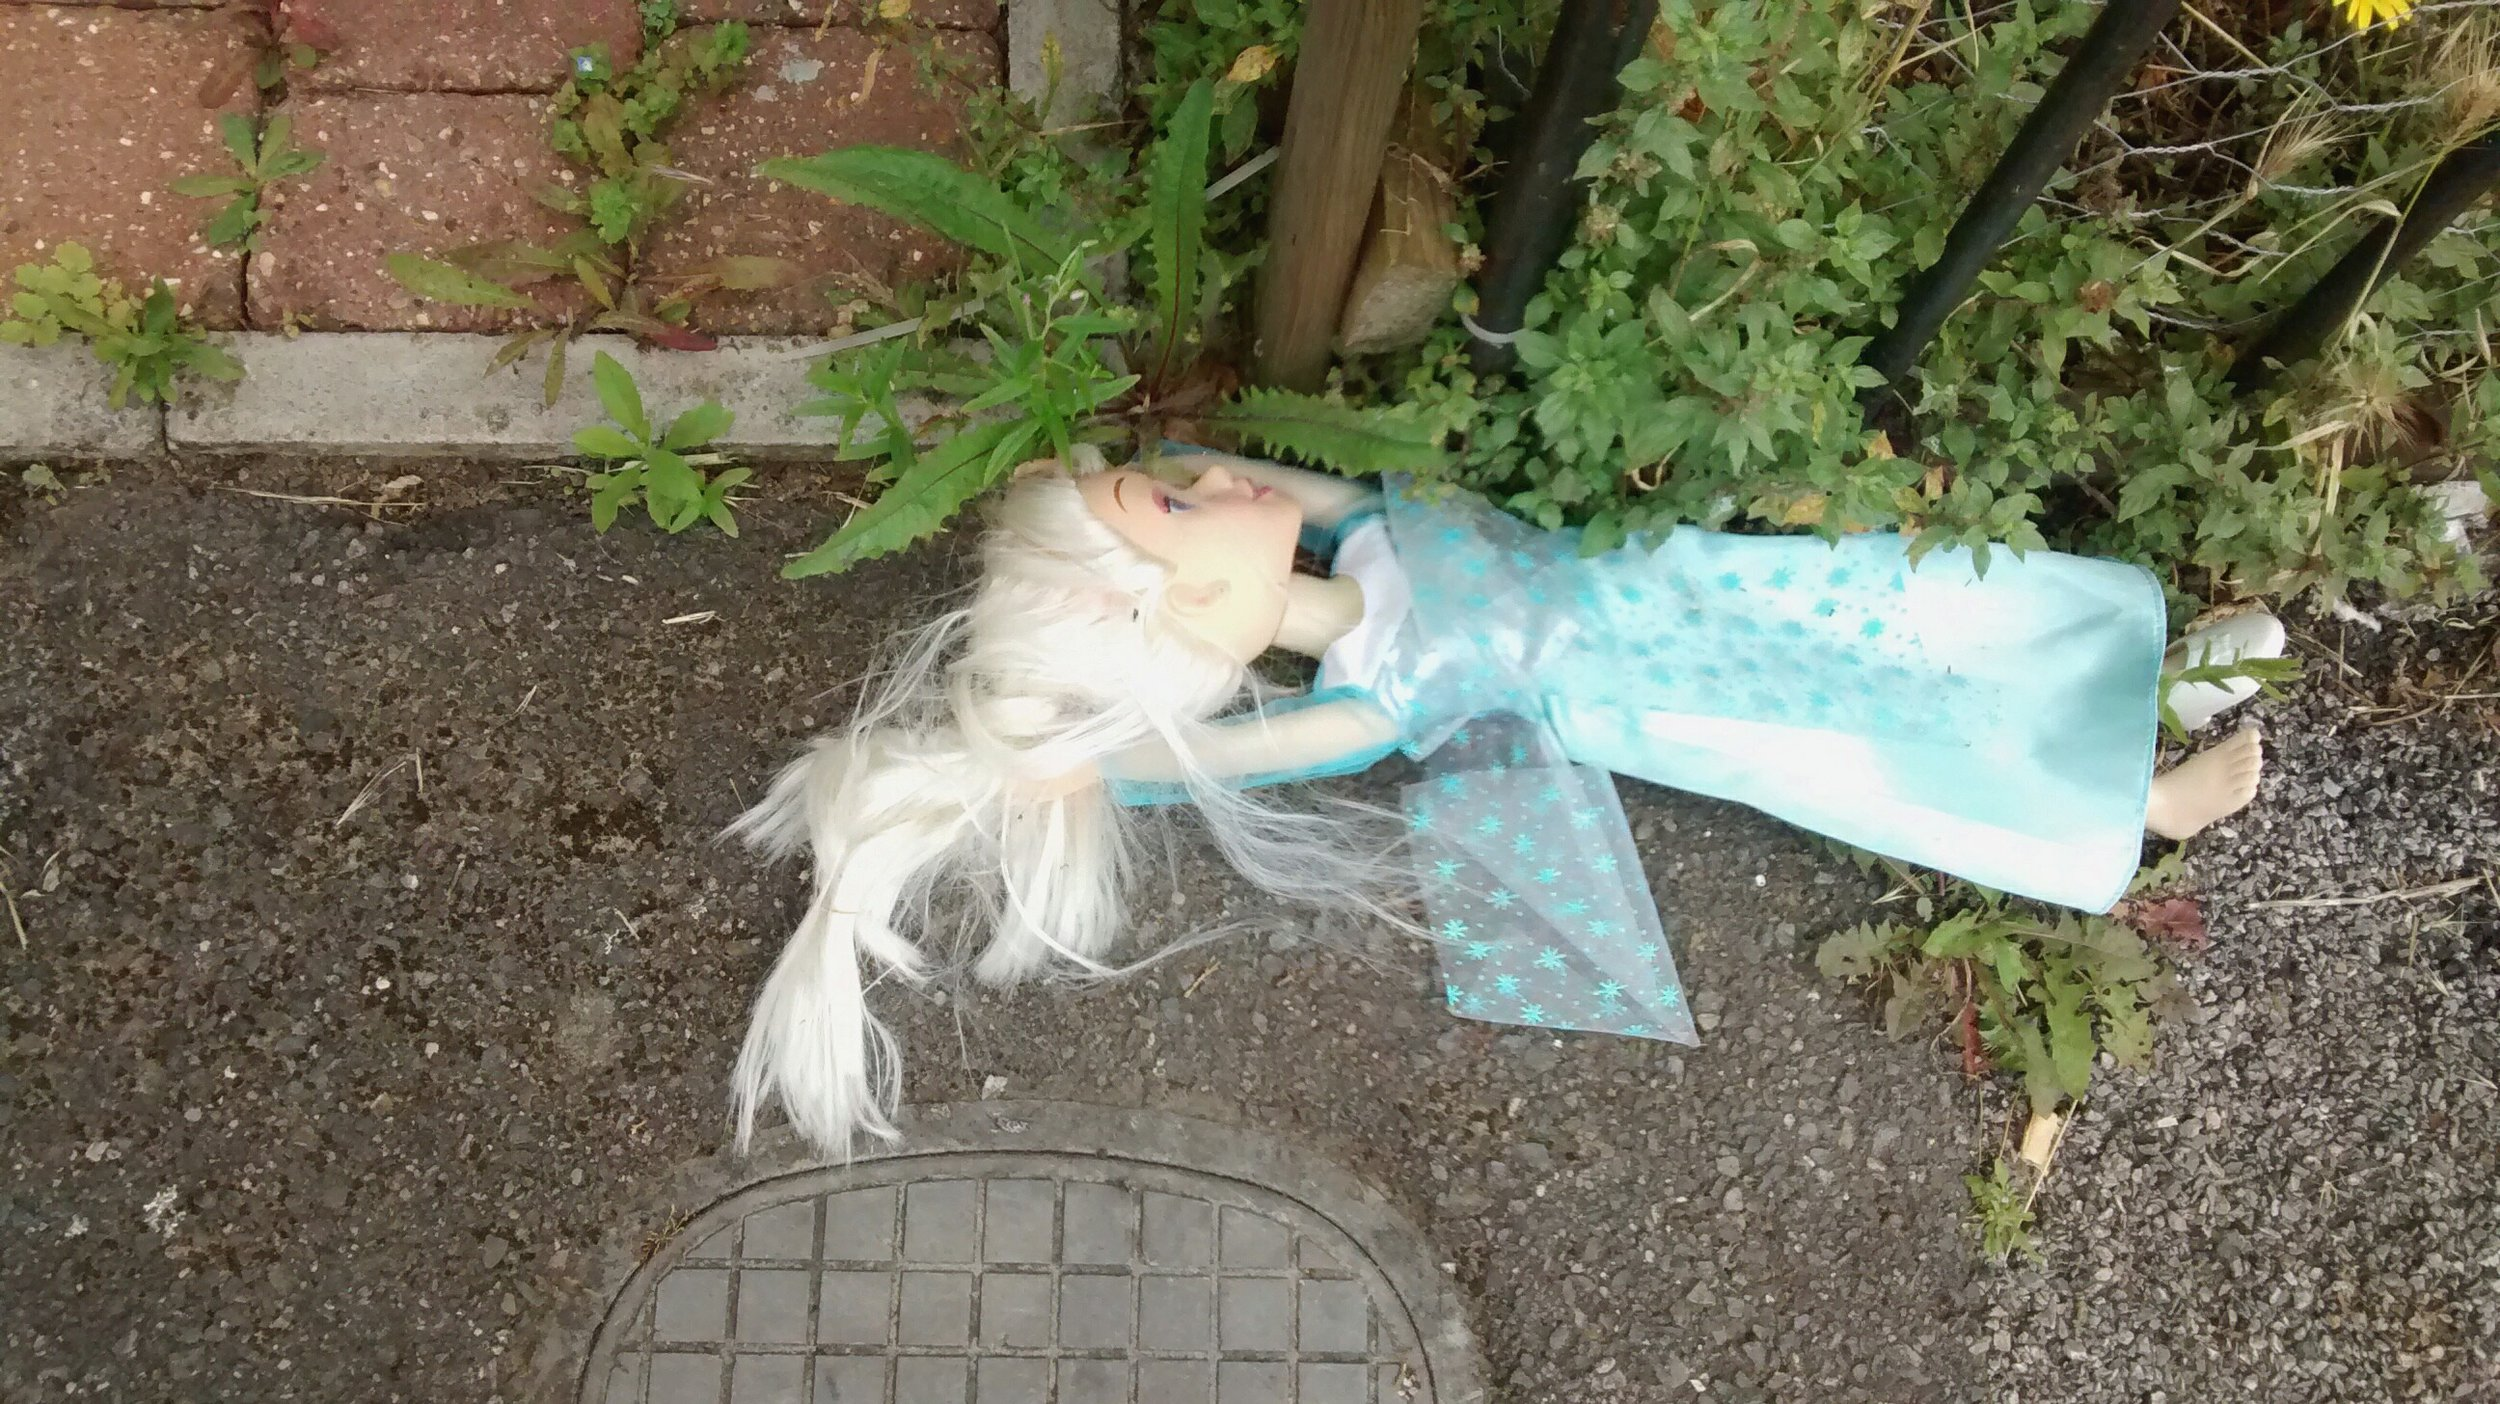 Discarded Doll